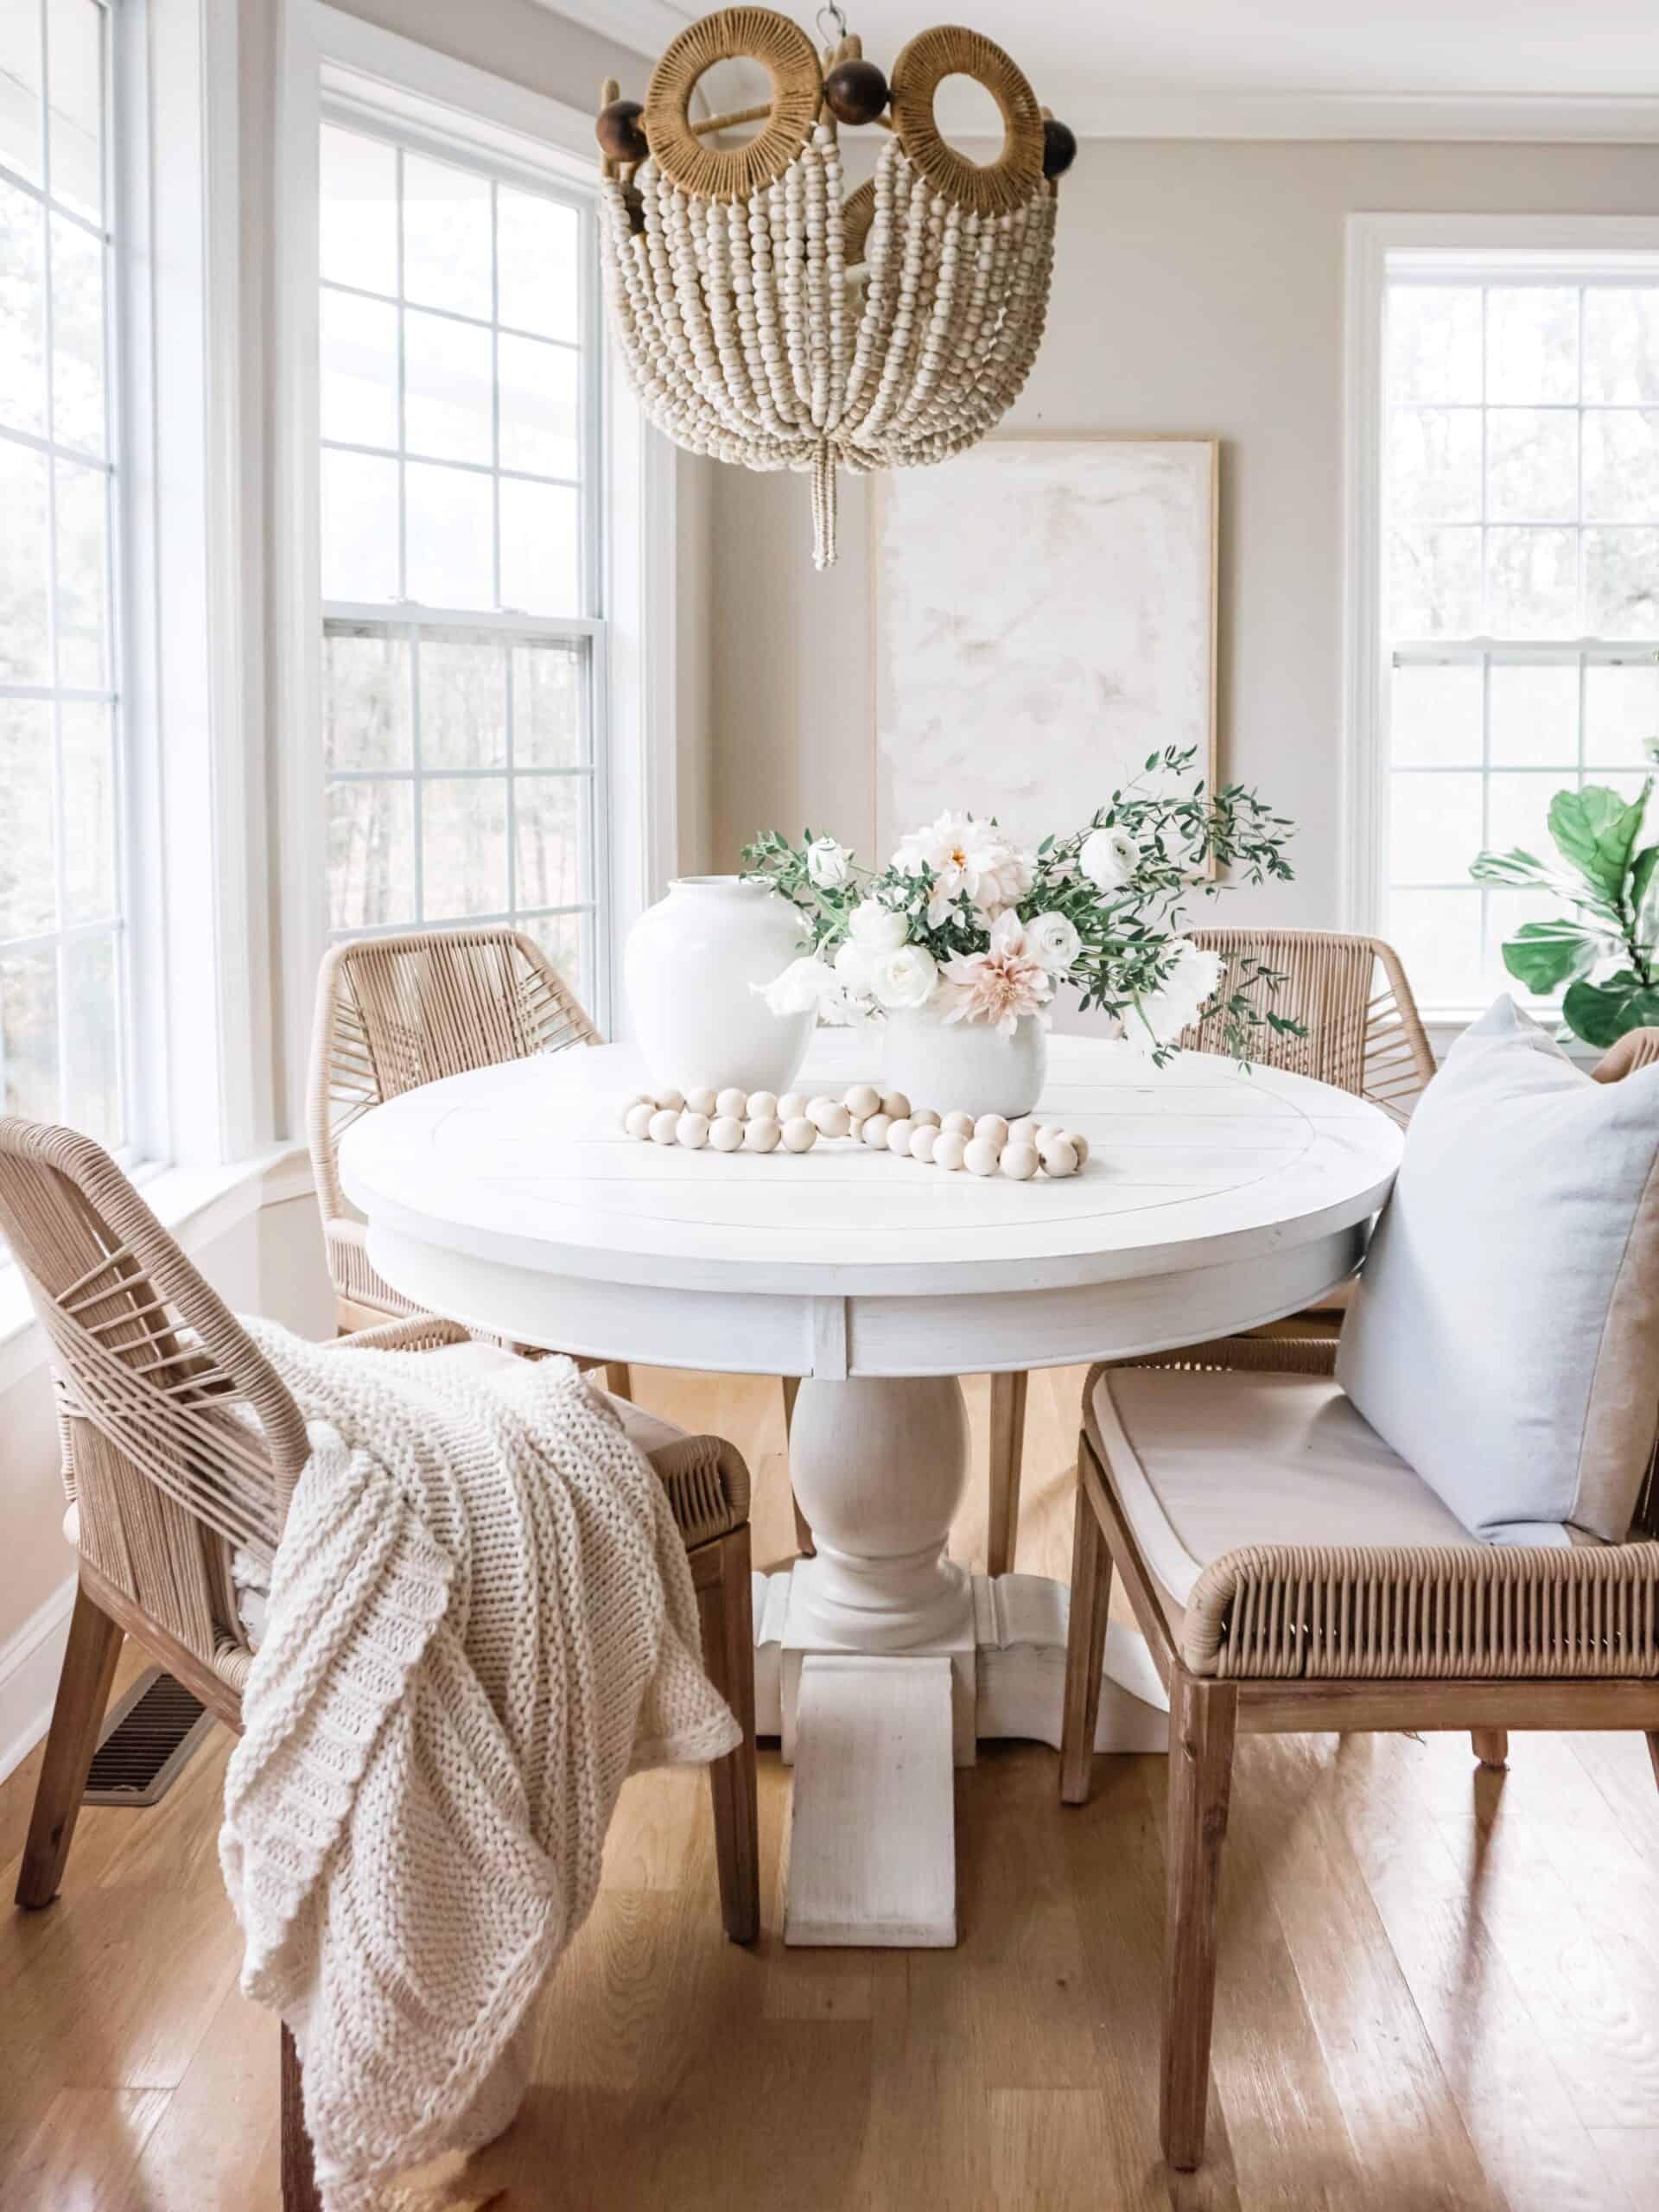 Coastal breakfast nook with round dining table and rope dining chairs.